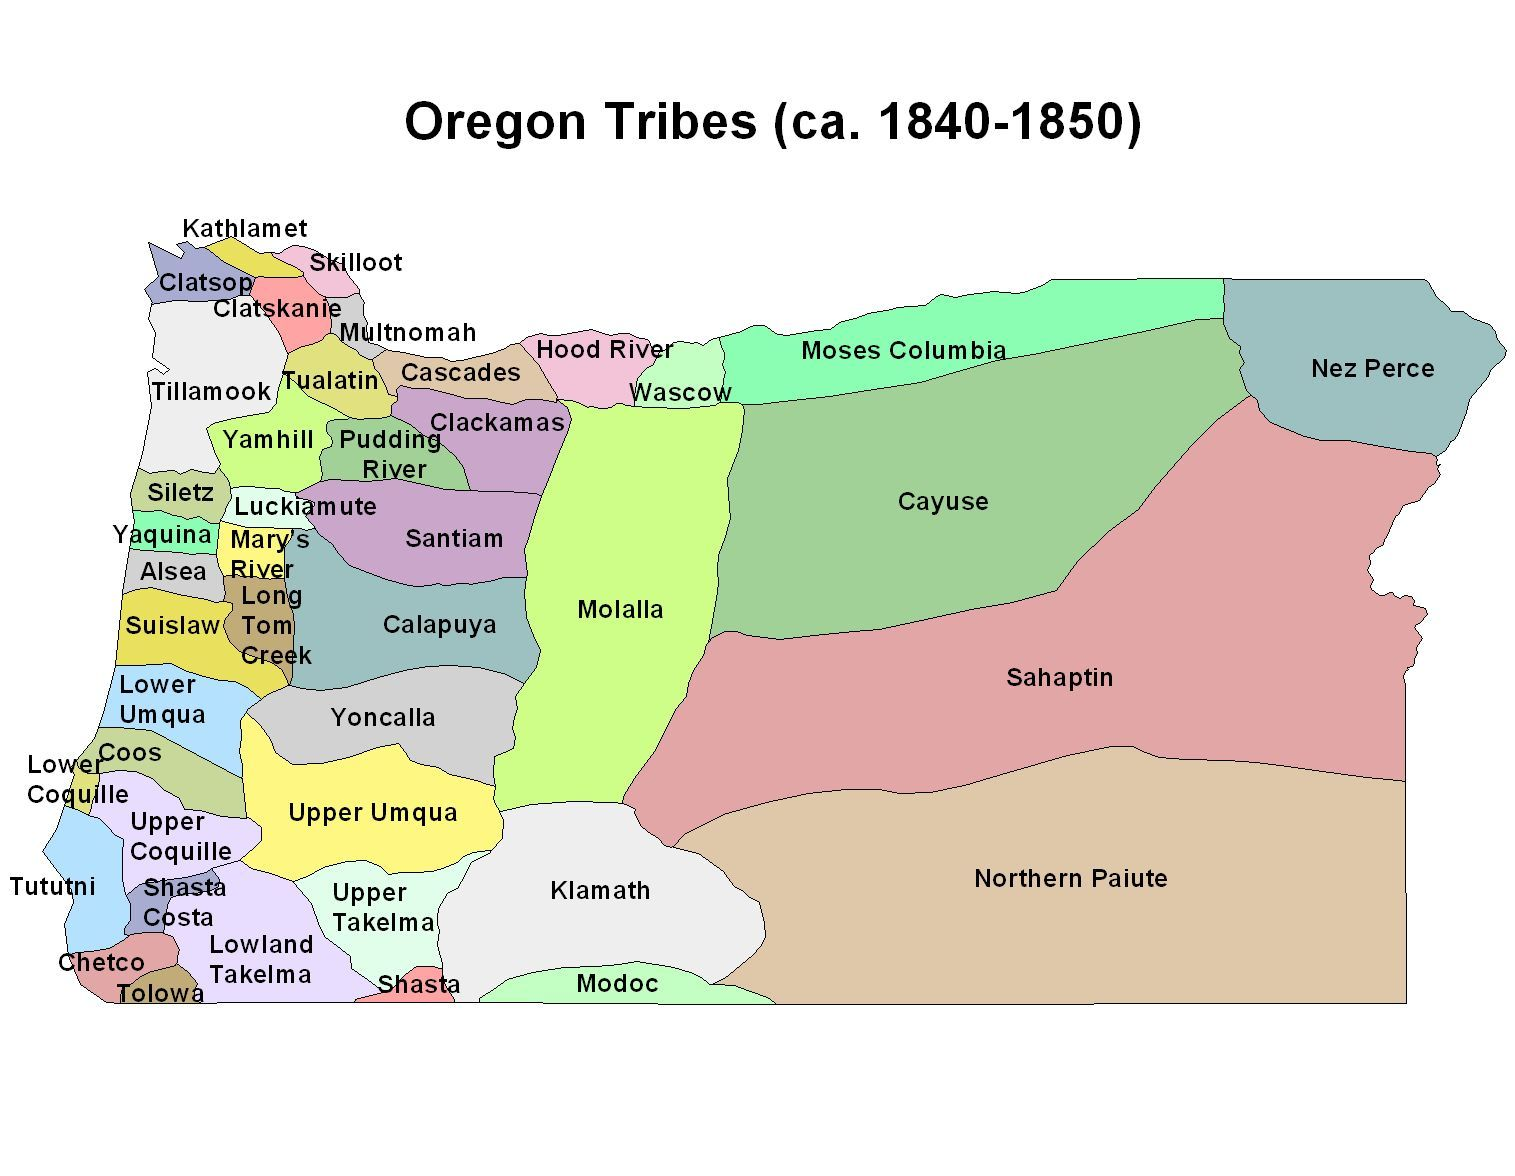 native american tribes in oregon - Google Search | Native american tribes, Native american quotes, State of oregon